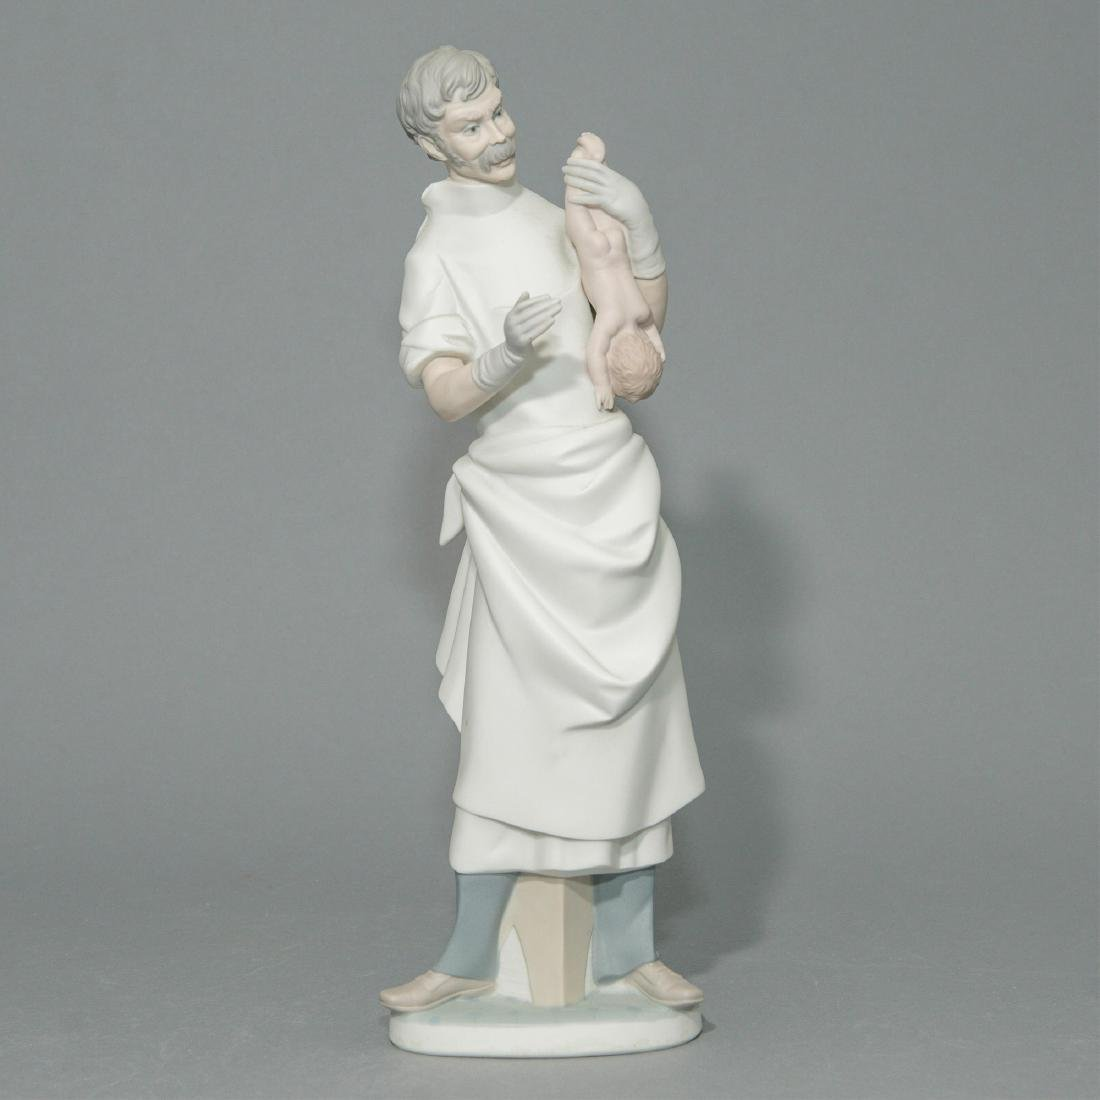 LLADRO OBSTETRICIAN PORCELAIN FIGURINE